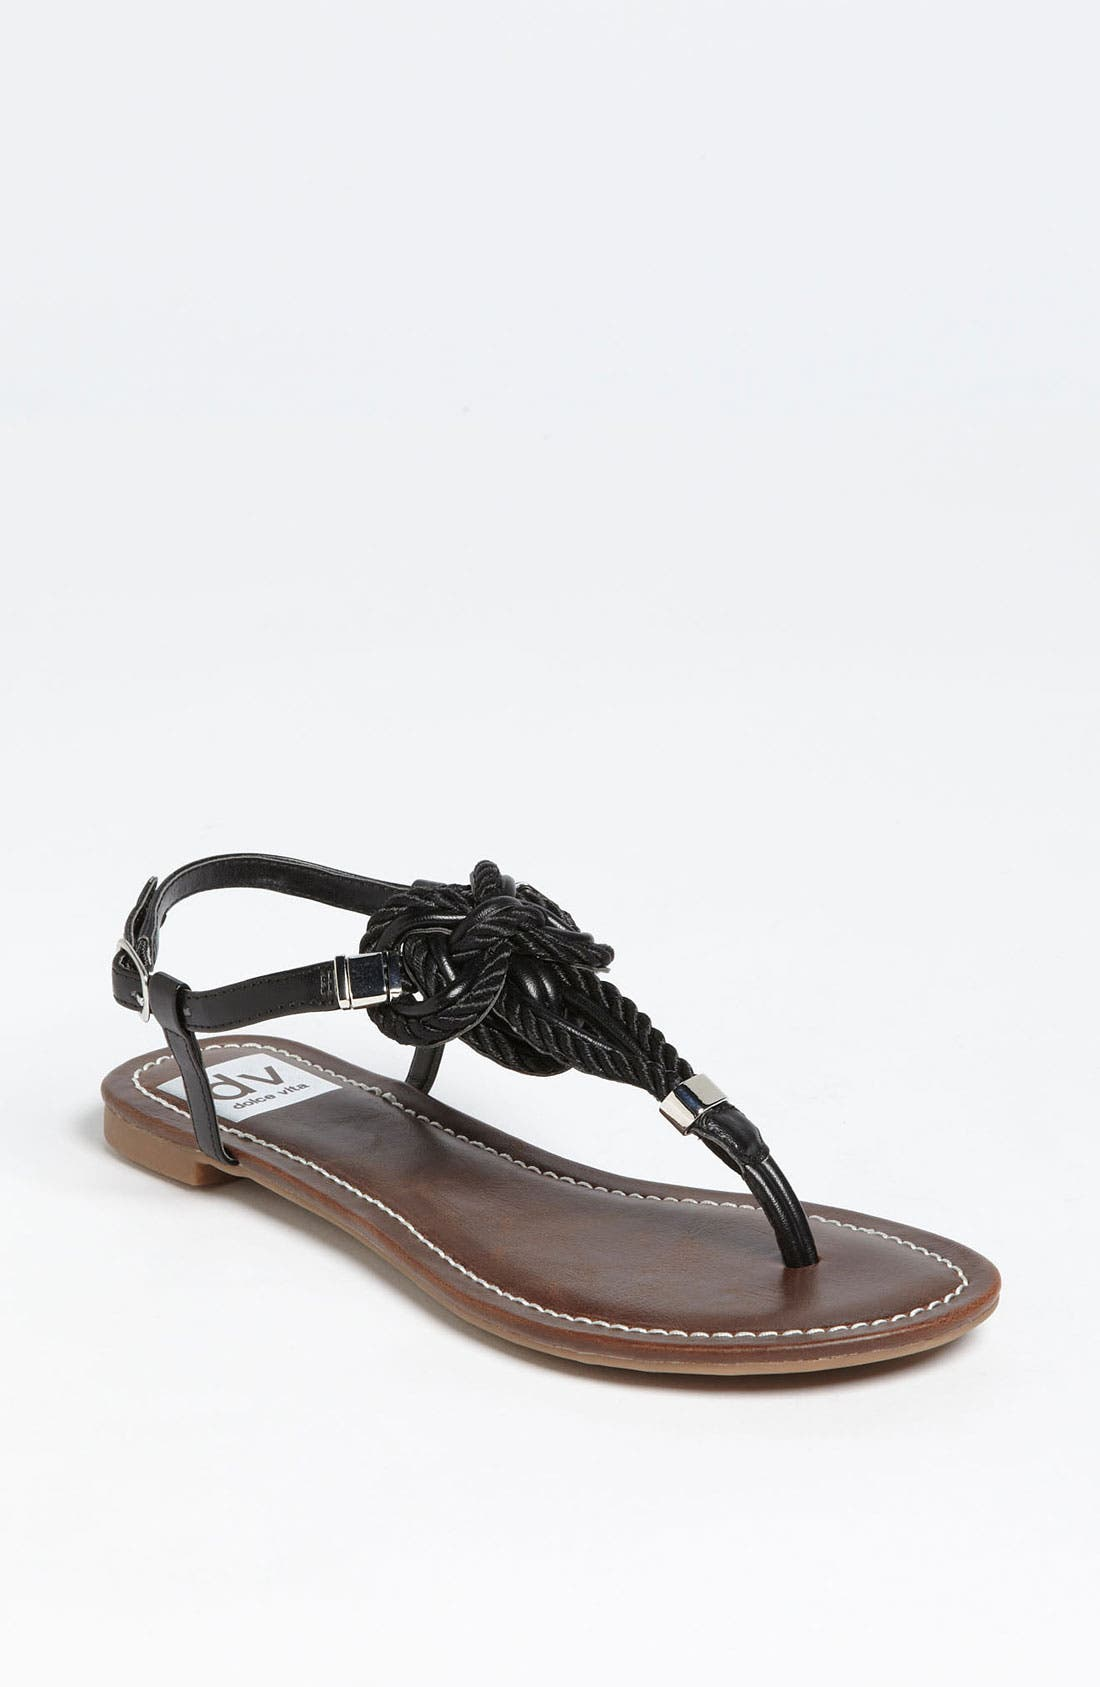 Main Image - DV by Dolce Vita 'Dizzy' Sandal (Online Only)